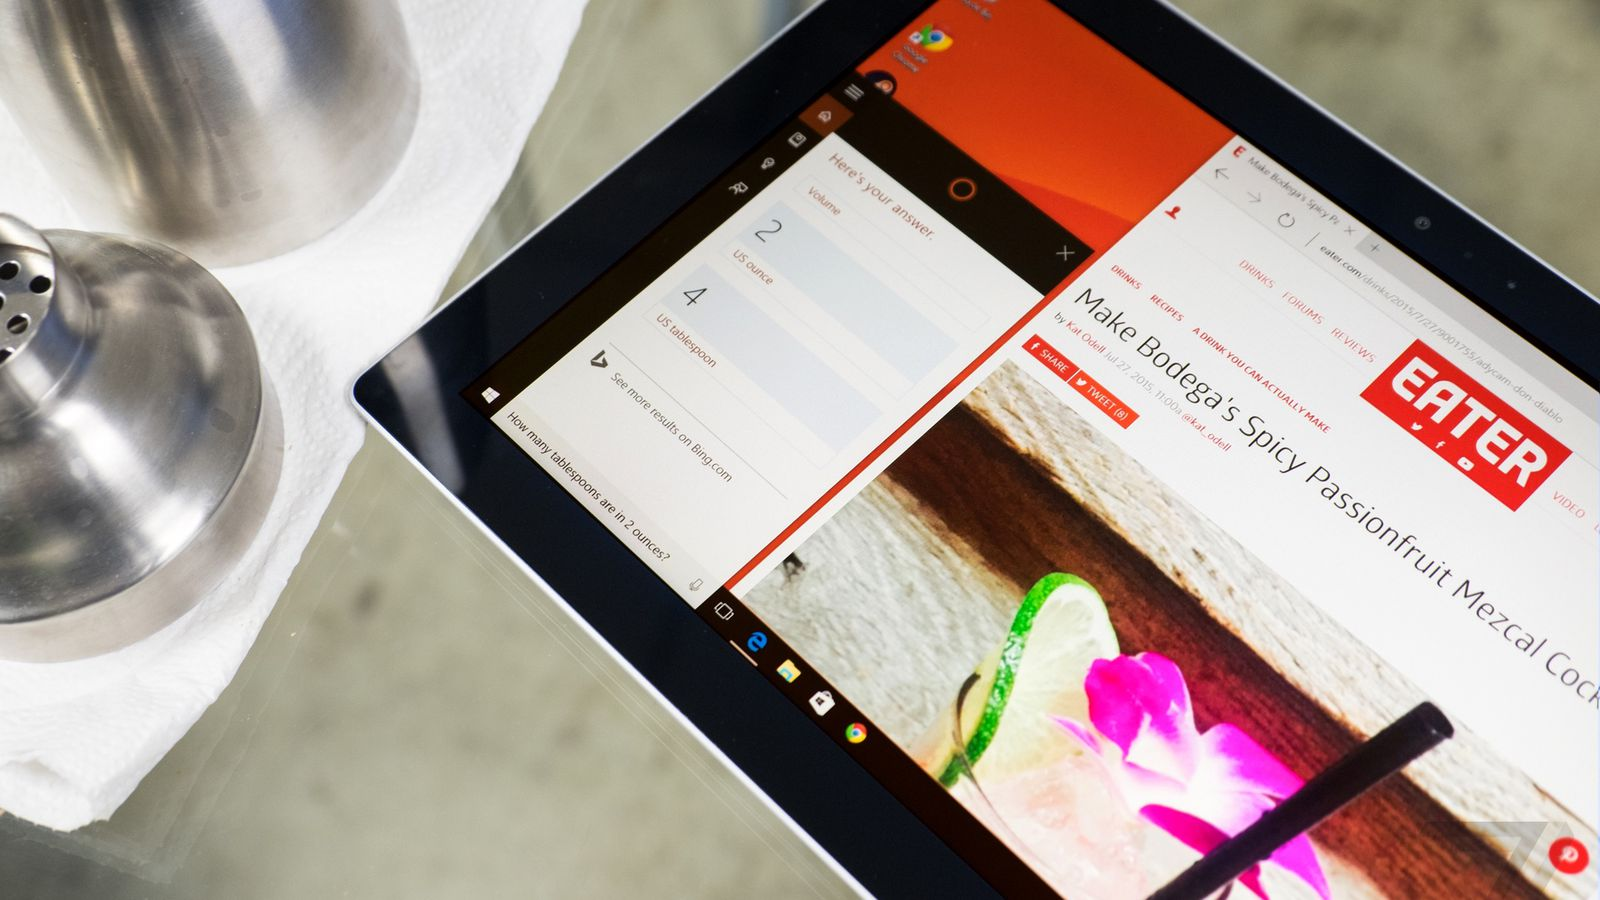 Cortana change your voice to mail - Cortana Will Now Help You Set Up A New Windows 10 Pc With Your Voice The Verge